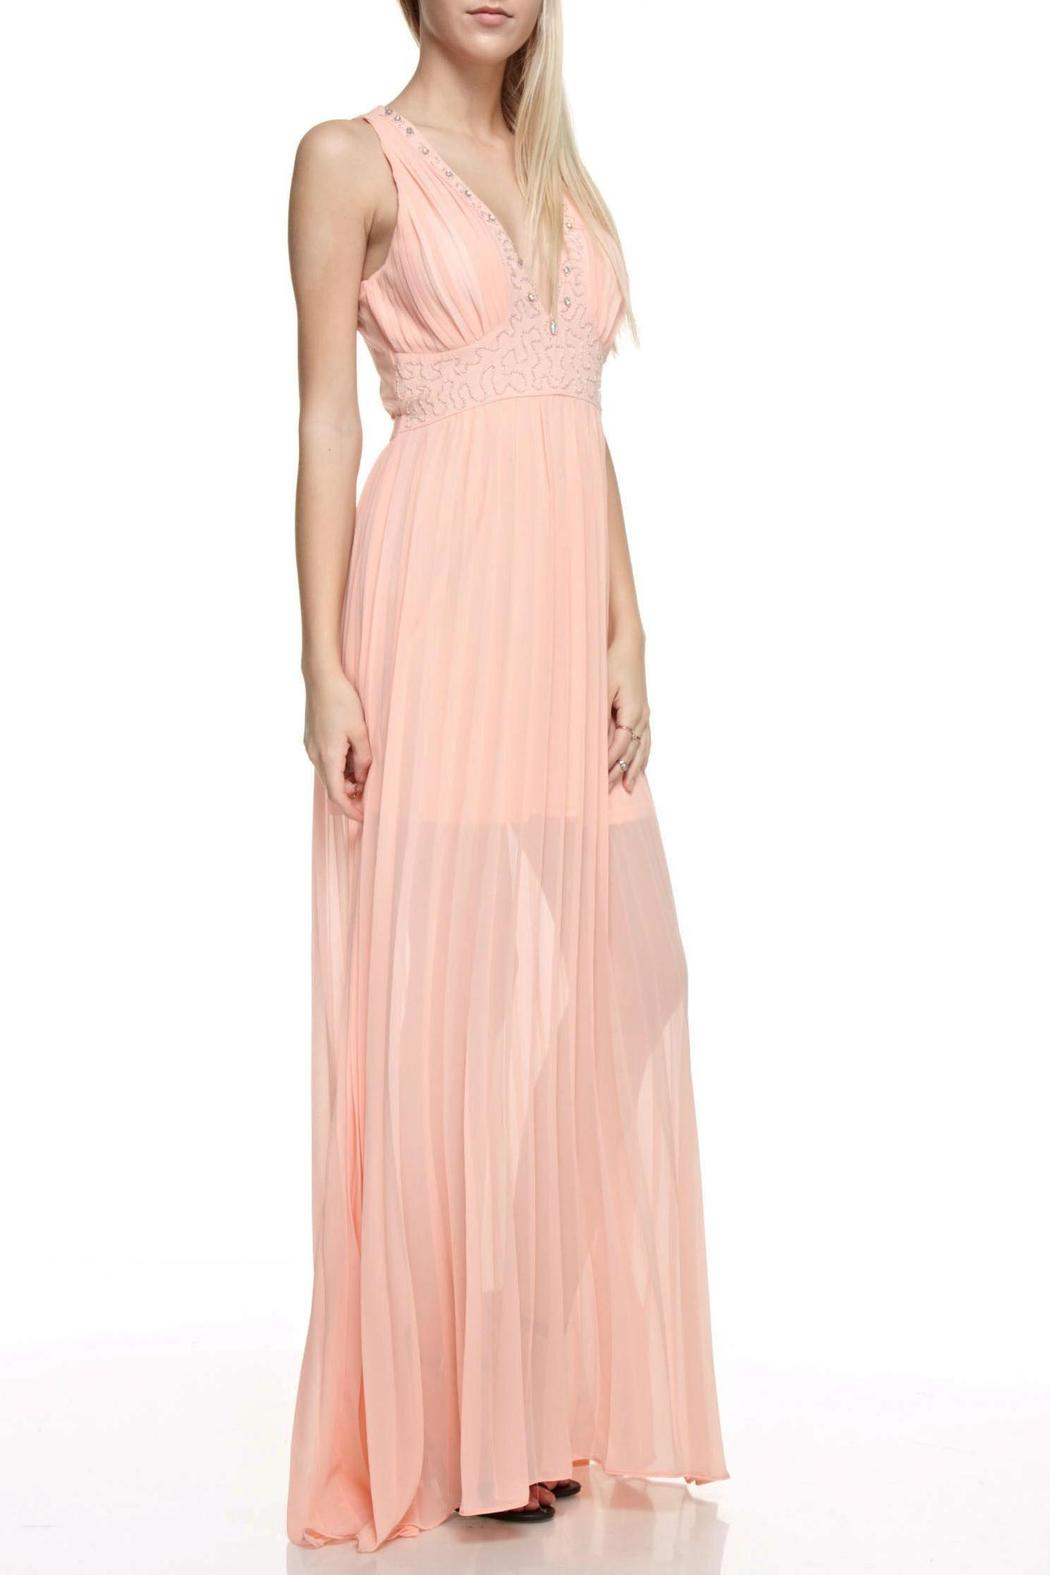 The Clothing Co Embellished Maxi Dress - Back Cropped Image